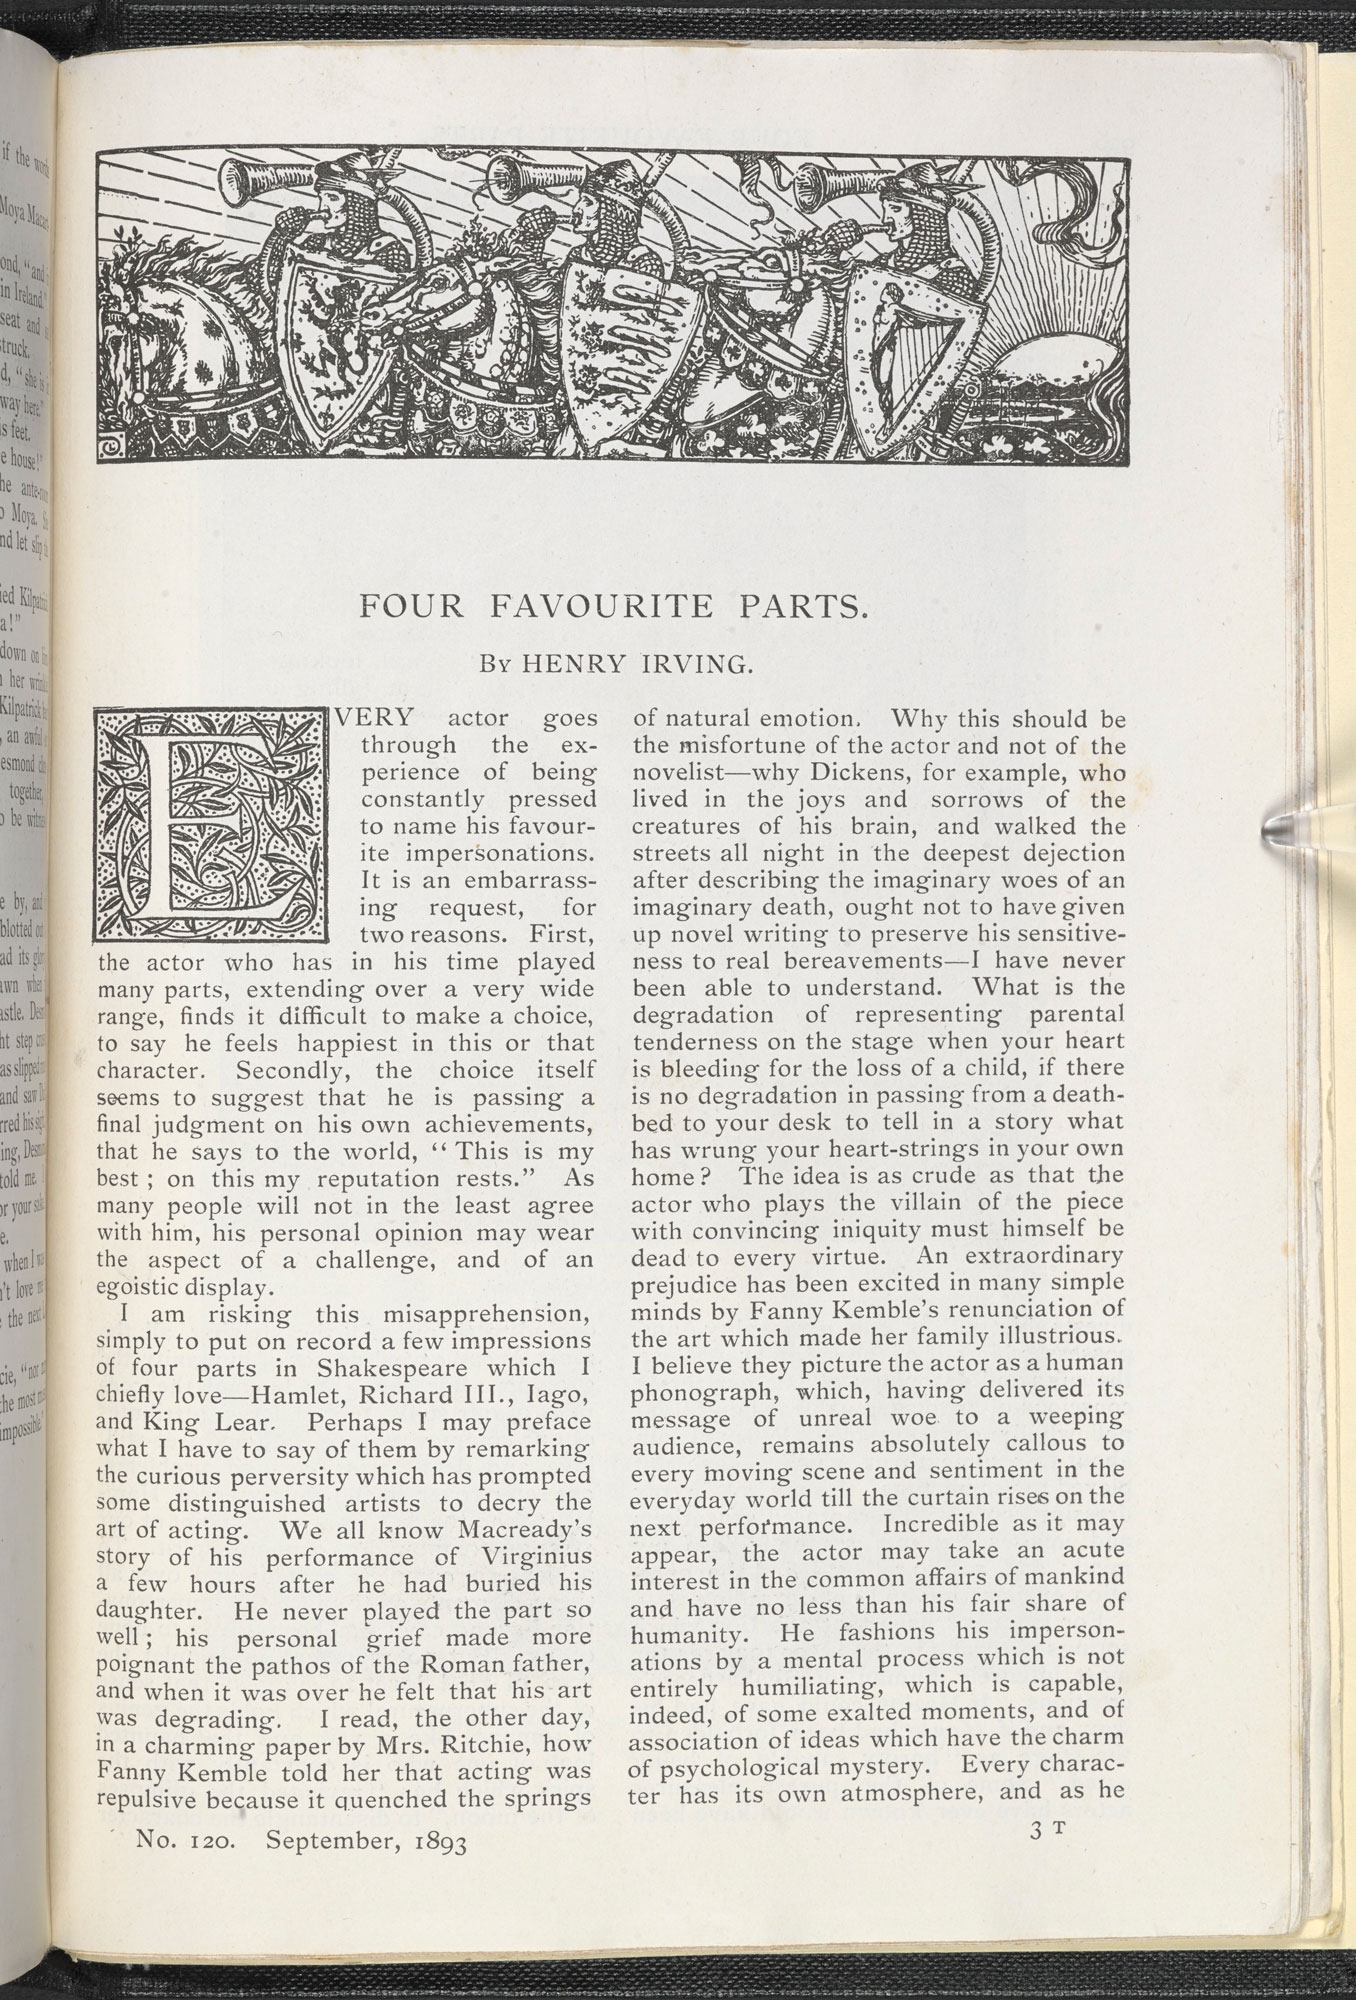 Henry Irving on his 'Four Favourite Parts' in English Illustrated Magazine, 1893